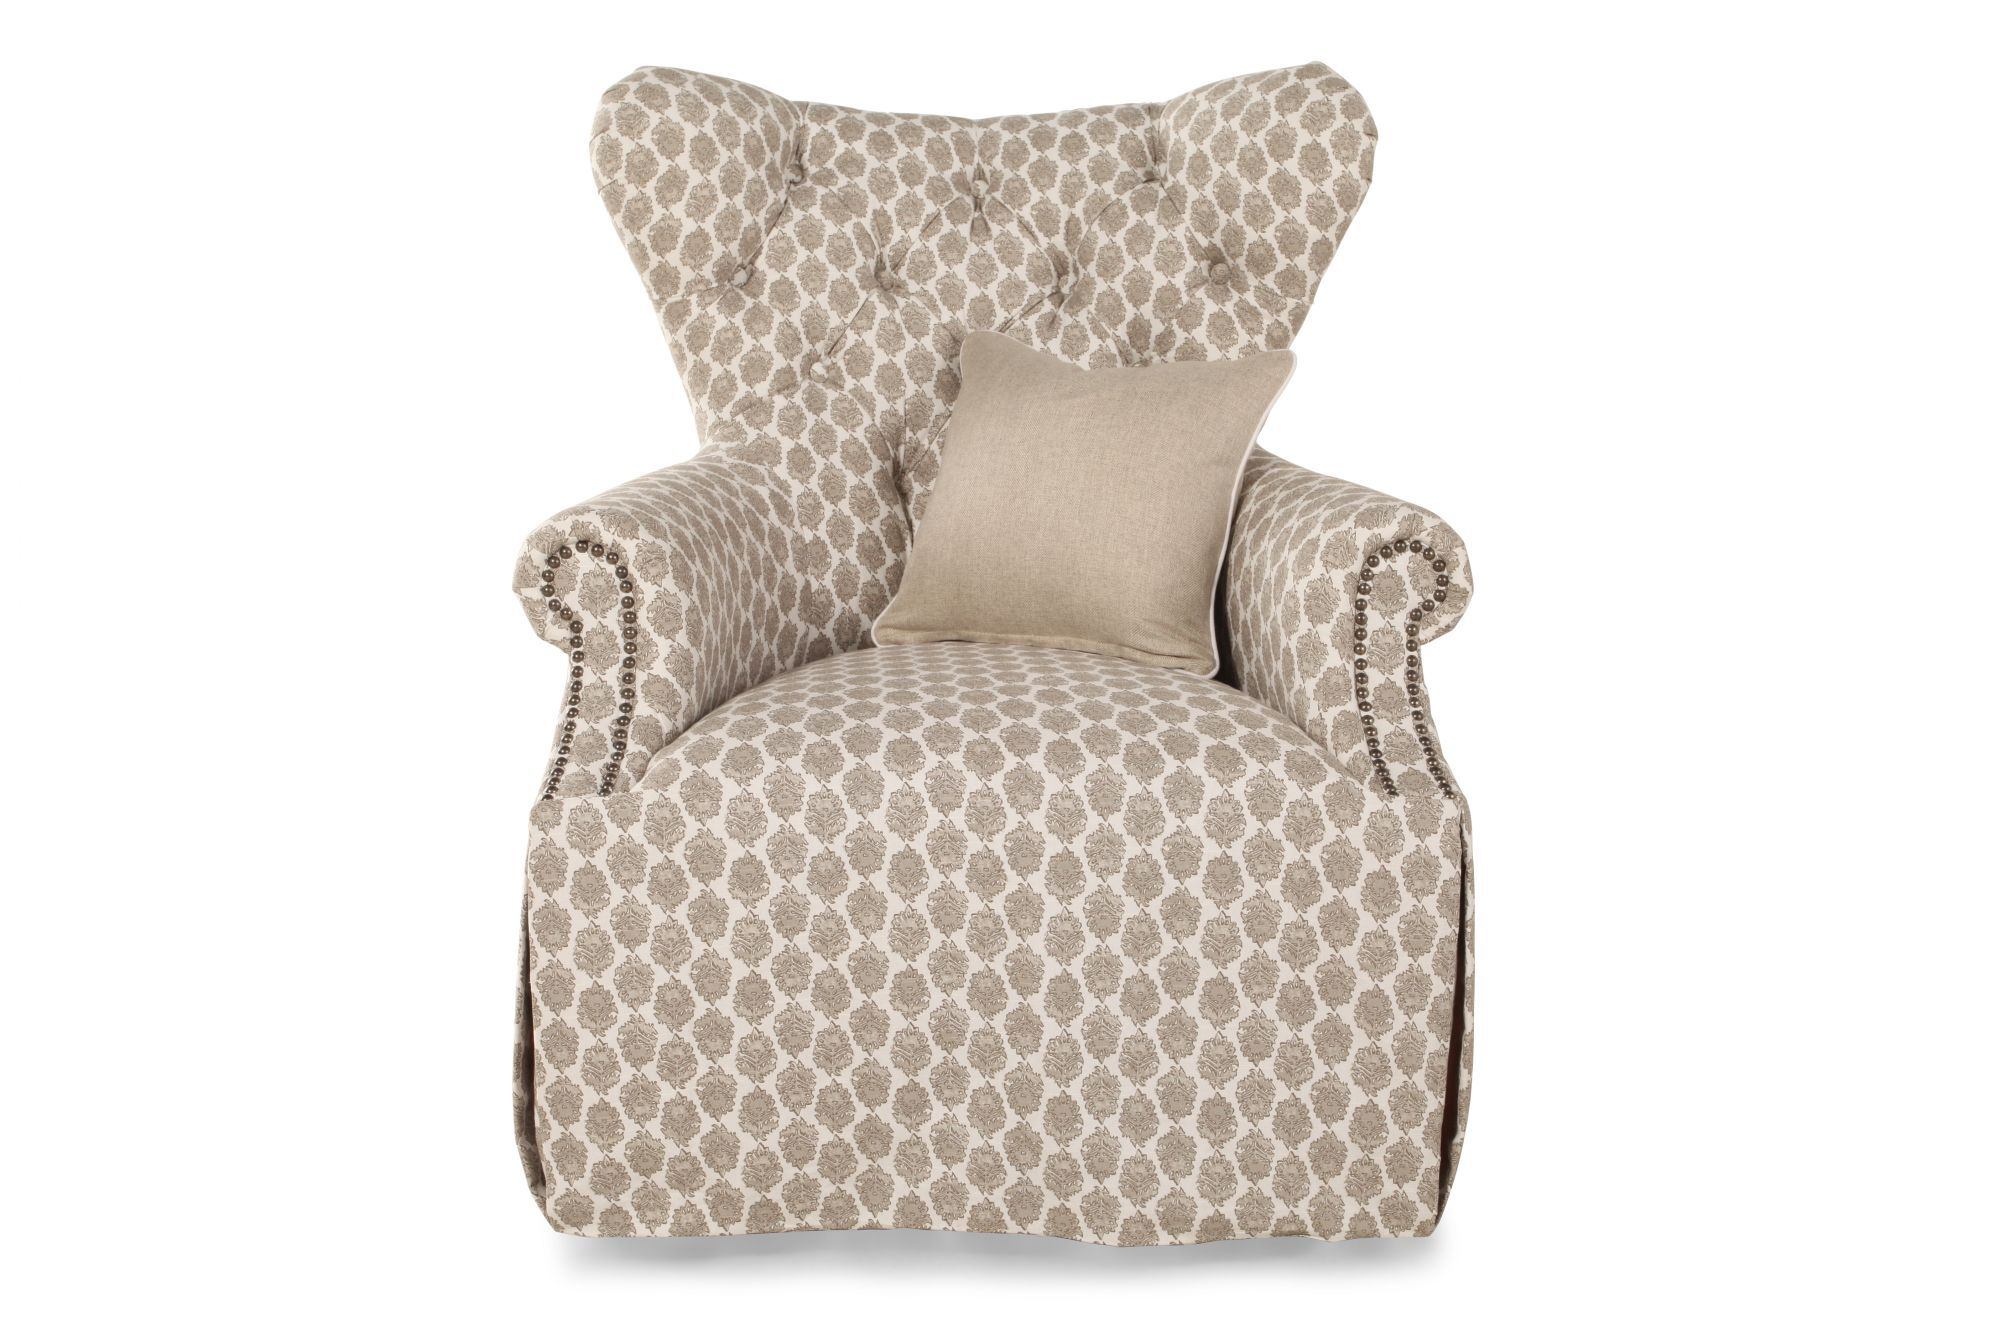 Floral Wingback Chair Floral Printed Skirted Wing Chair In Beige Mathis